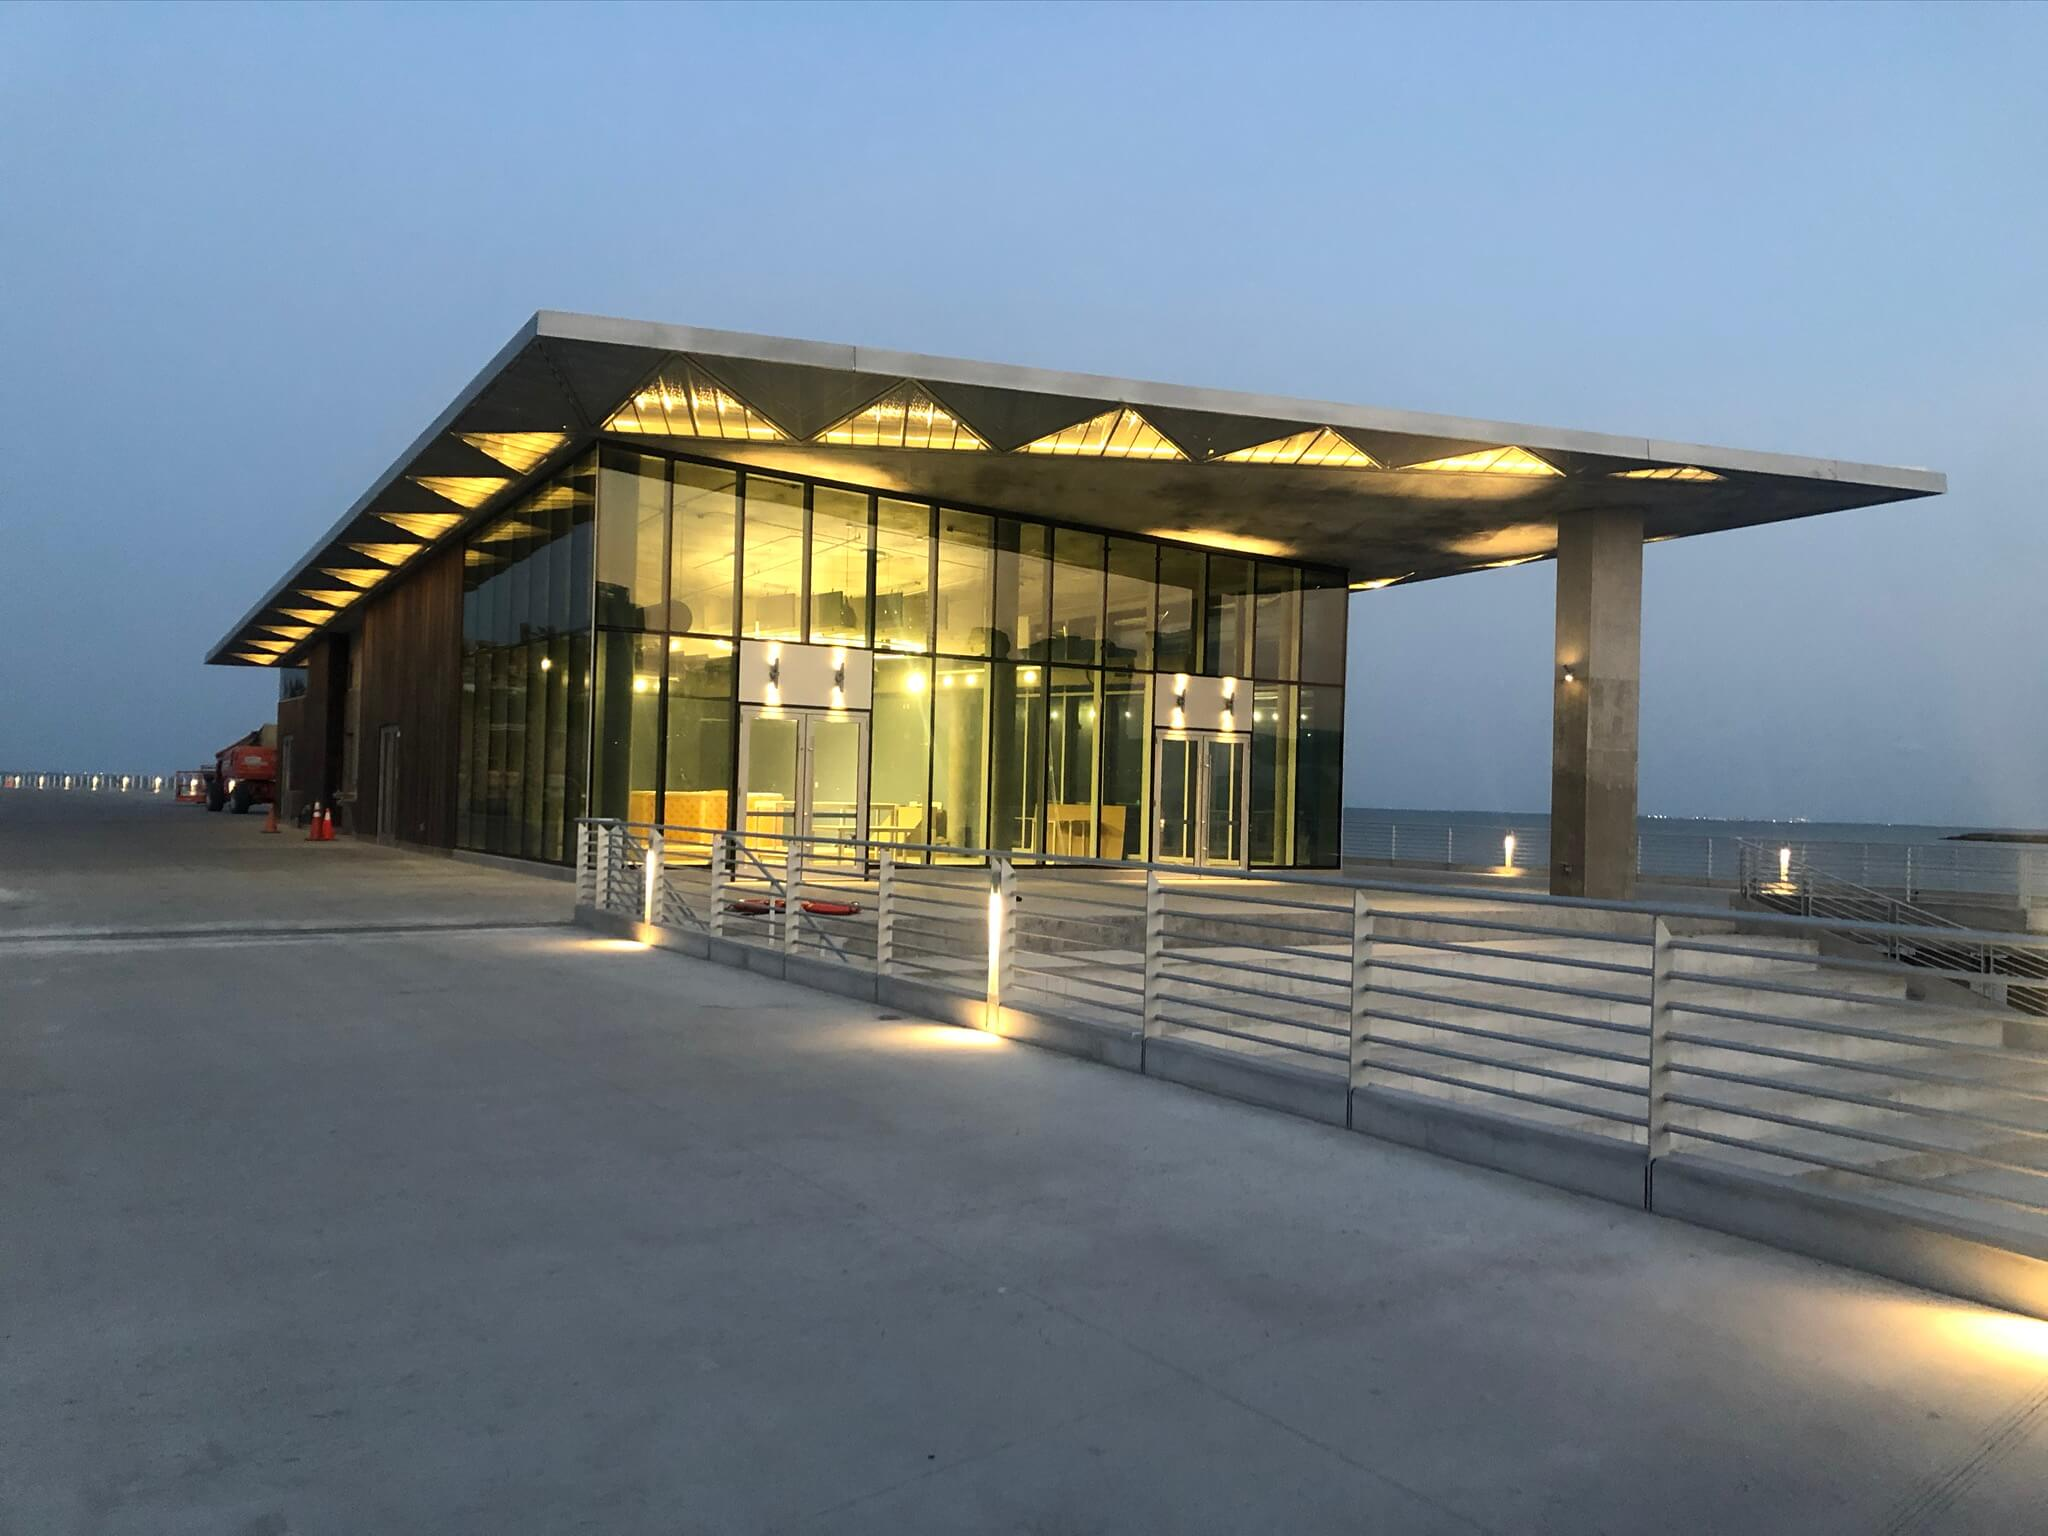 Image of the St. Pete Pier pier head in Florida